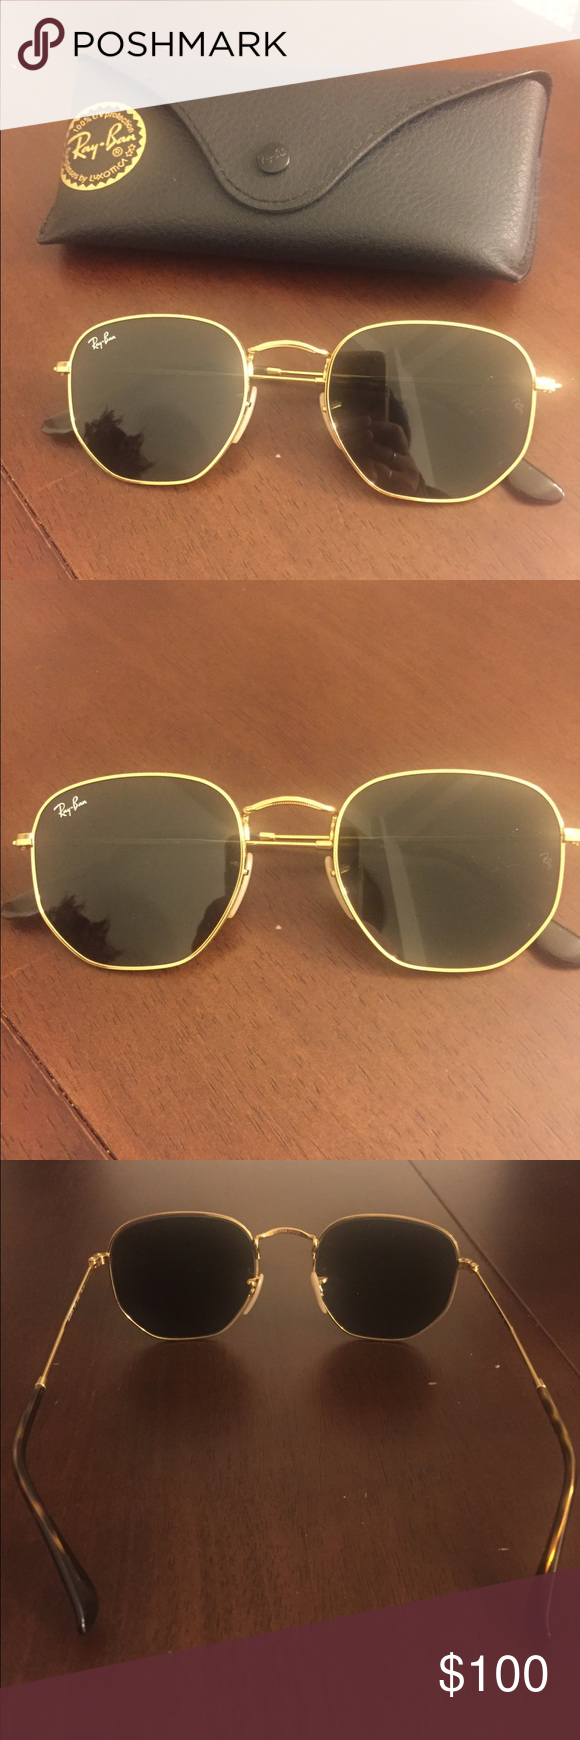 6a0d014124b Ray Ban Hexagonal Flat Sunglasses Gold Green Brand new Ray Ban hexagon  sunglasses. Never worn